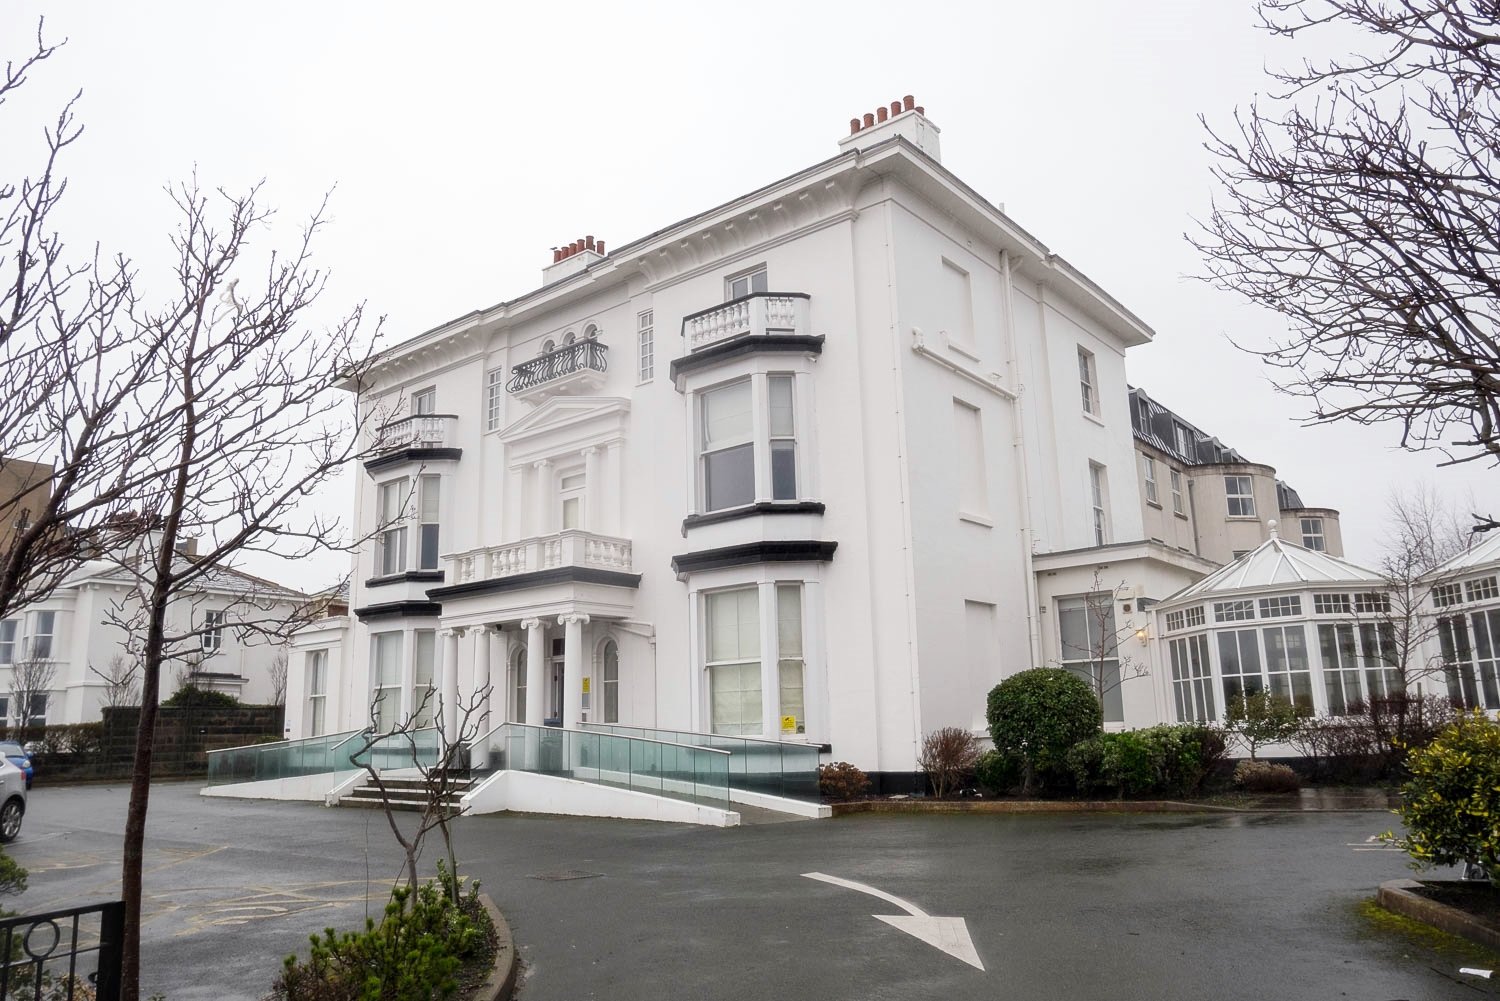 Byng house has been offered to the NHS for use during the coronavirus pandemic